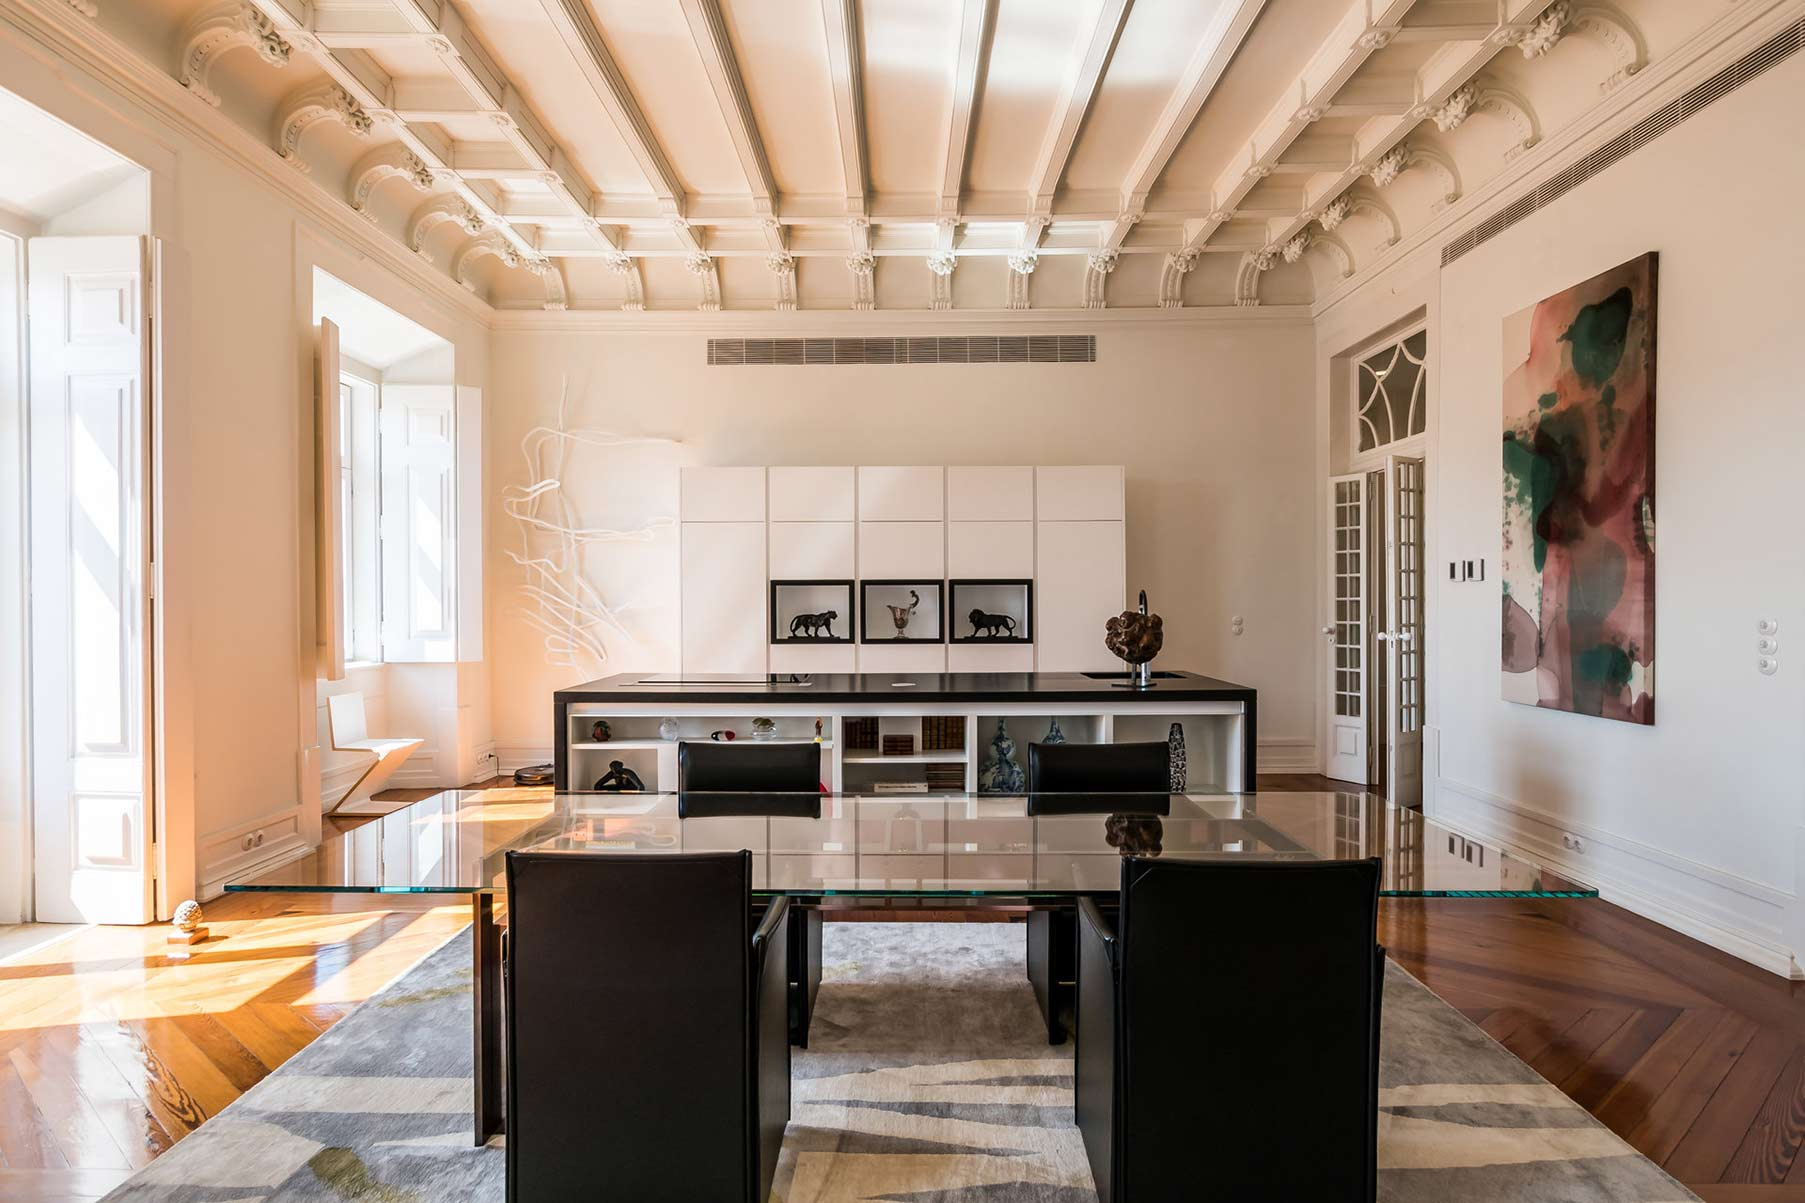 Lisboa - Portugal - Apartment , 4 rooms, 3 bedrooms - Slideshow Picture 4